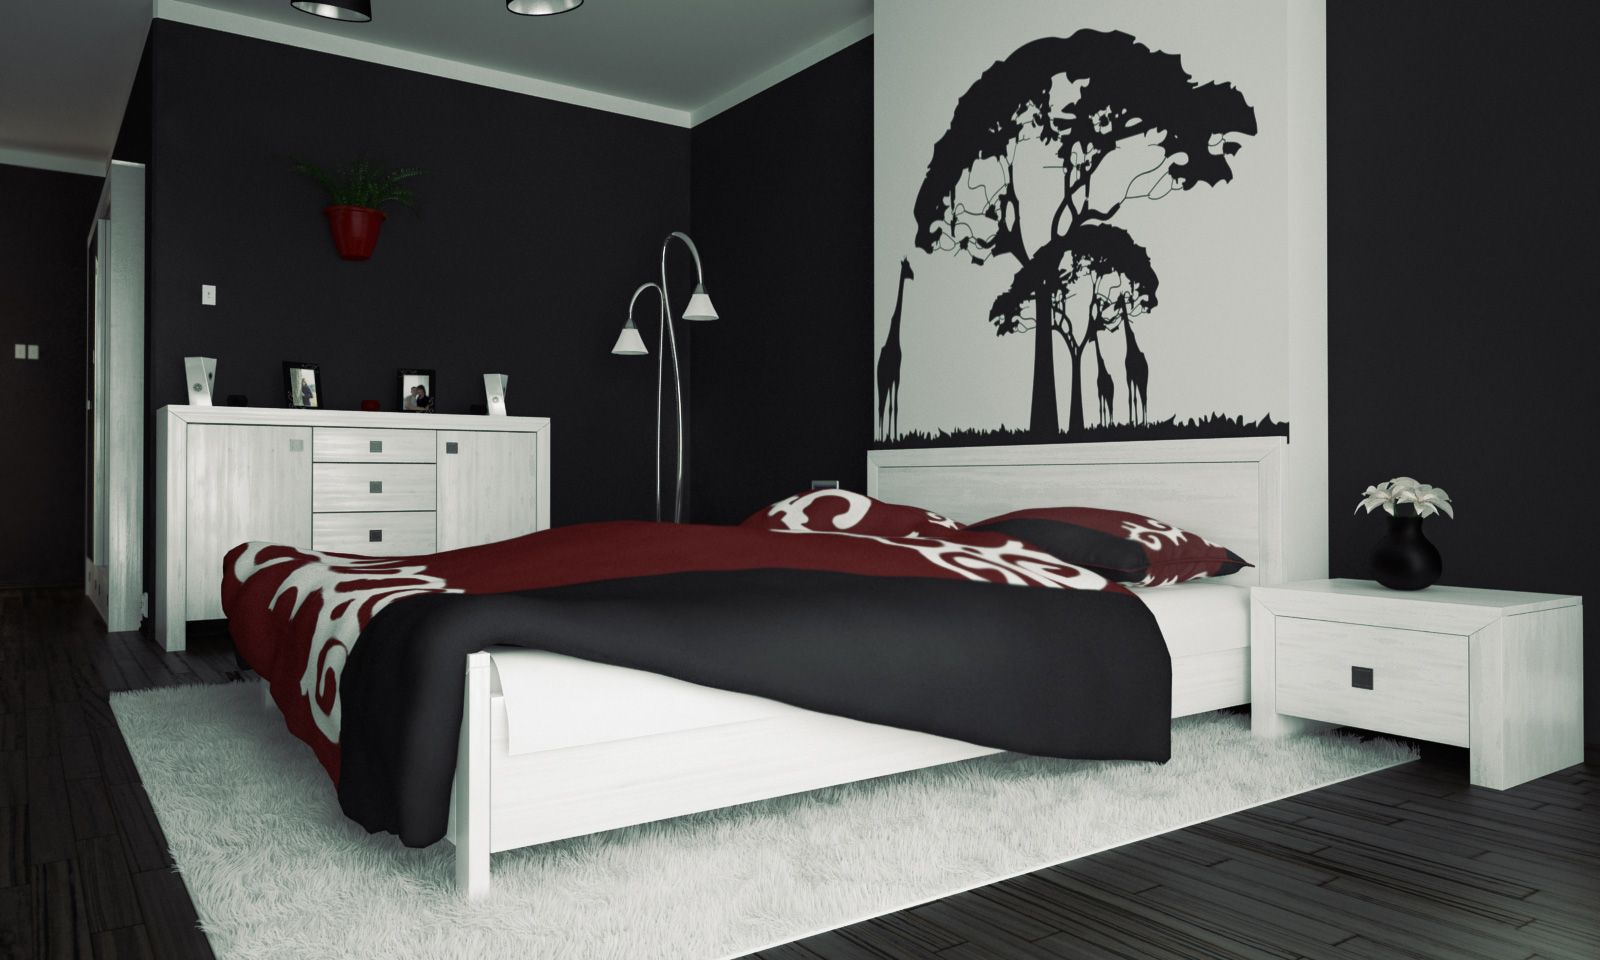 Black And White Artwork For Bedroom Bedroom Interior Masculine Style White Elegant Bed Design On Black